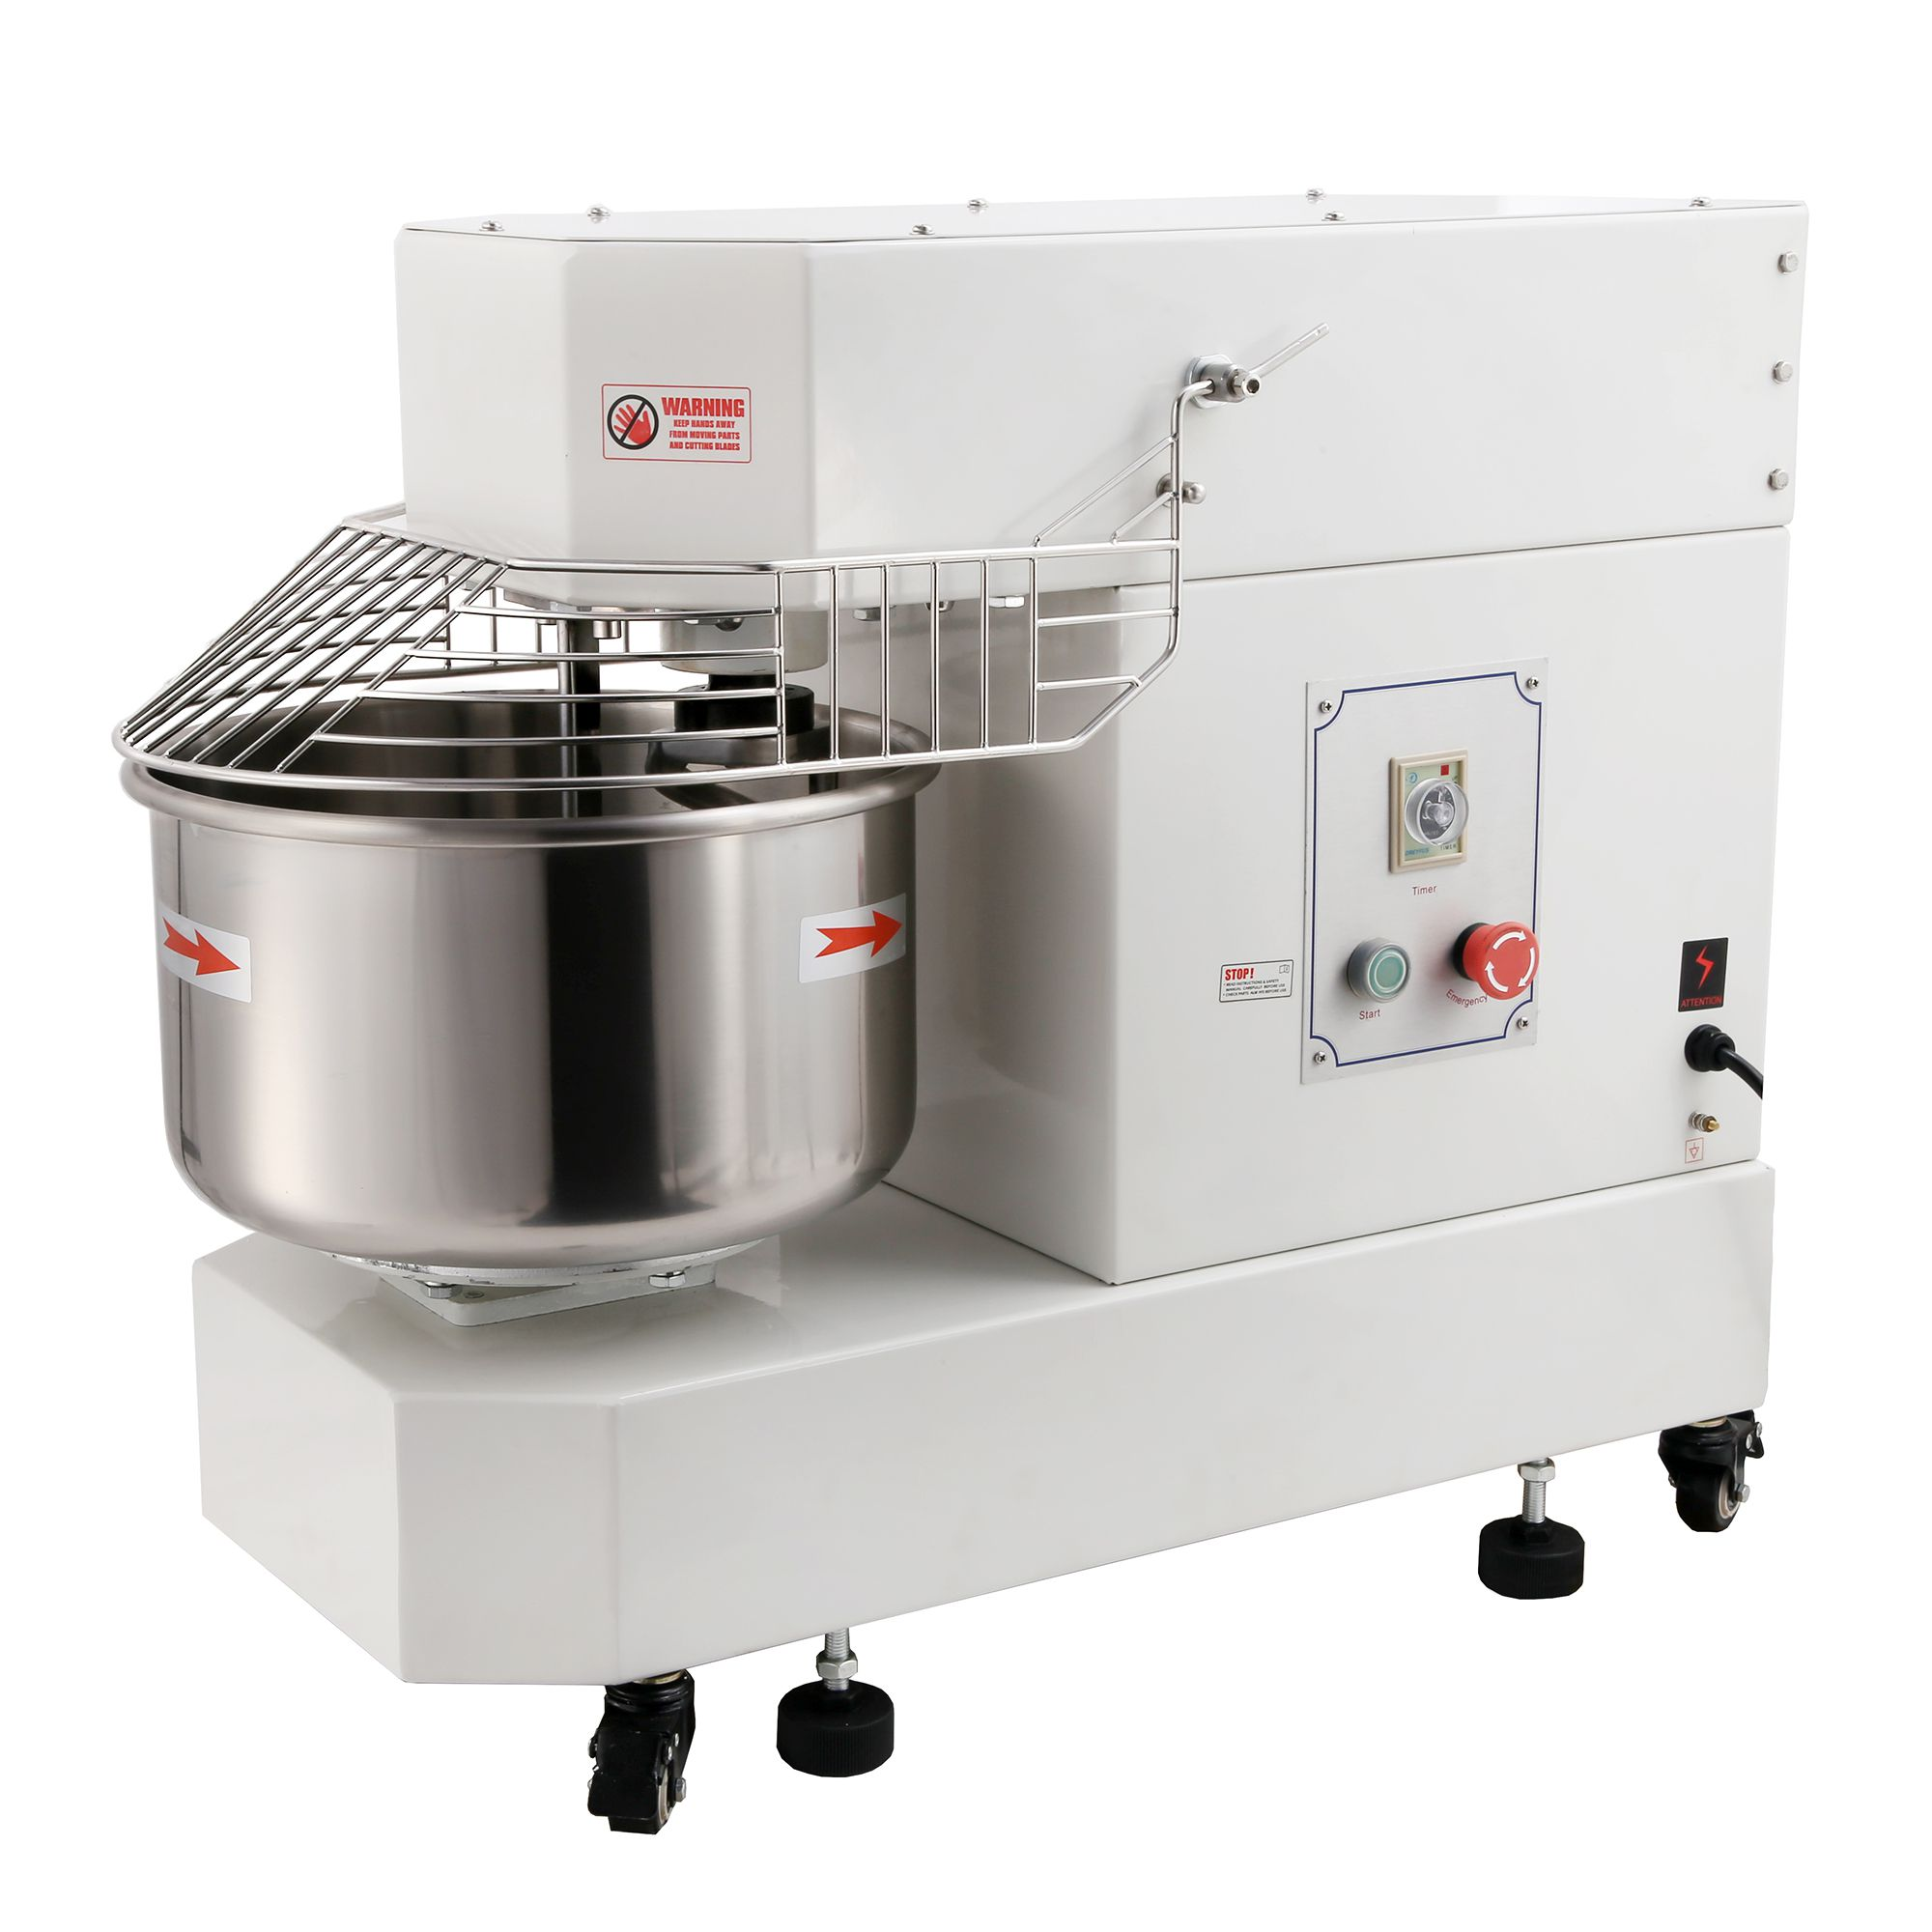 Hakka Commercial Spiral Mixers and Dough Mixer (20 Quart Spiral Mixer DN20)